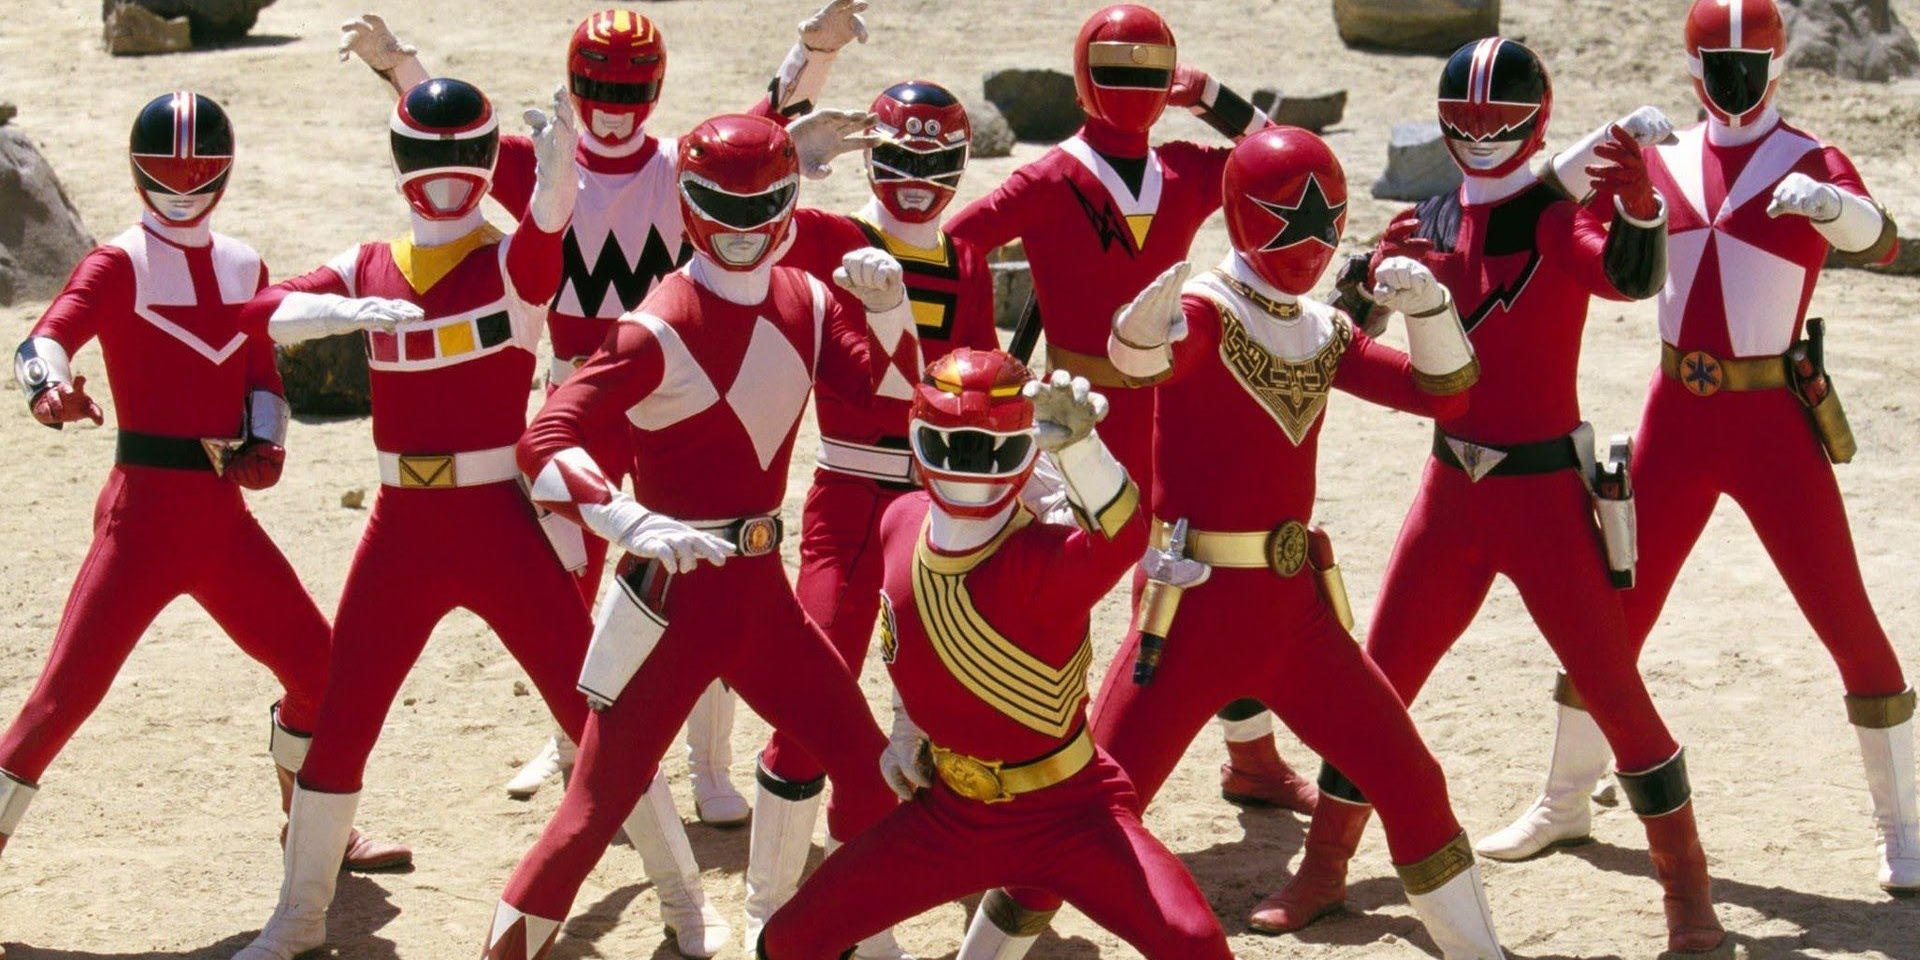 Every Red Power Ranger